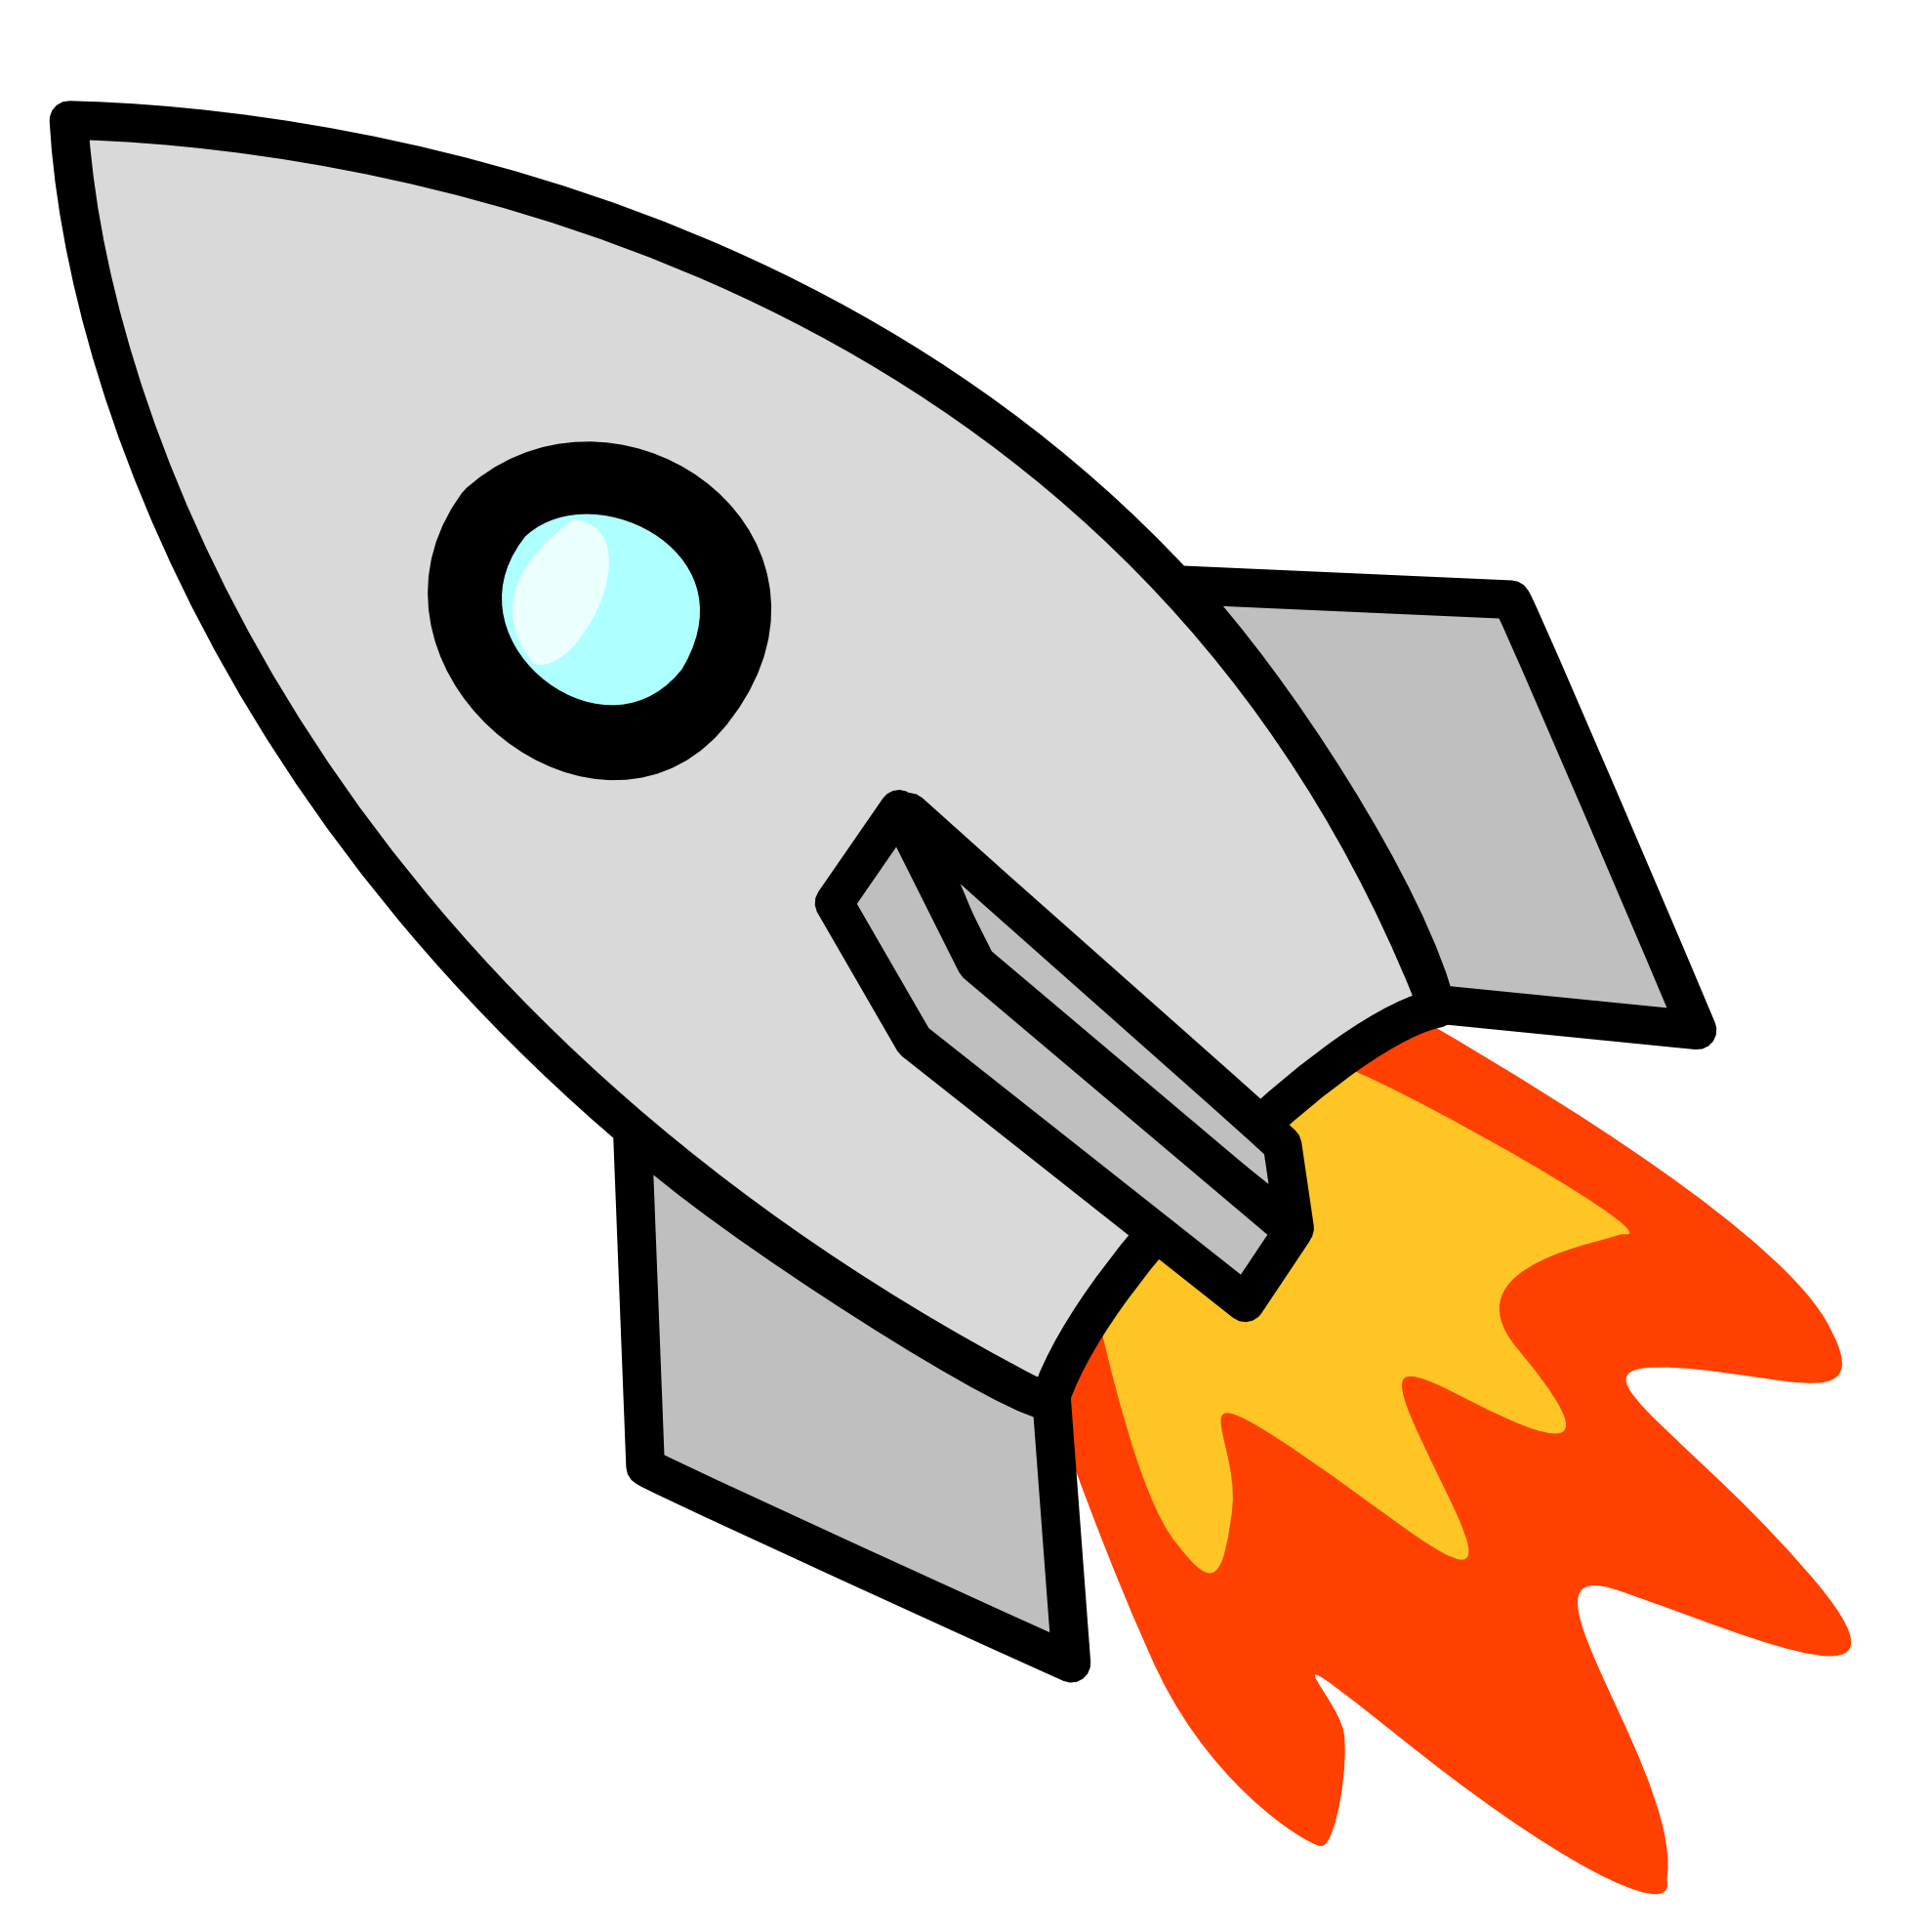 Spacecraft drawing kid. Spaceship clipart images clipartix